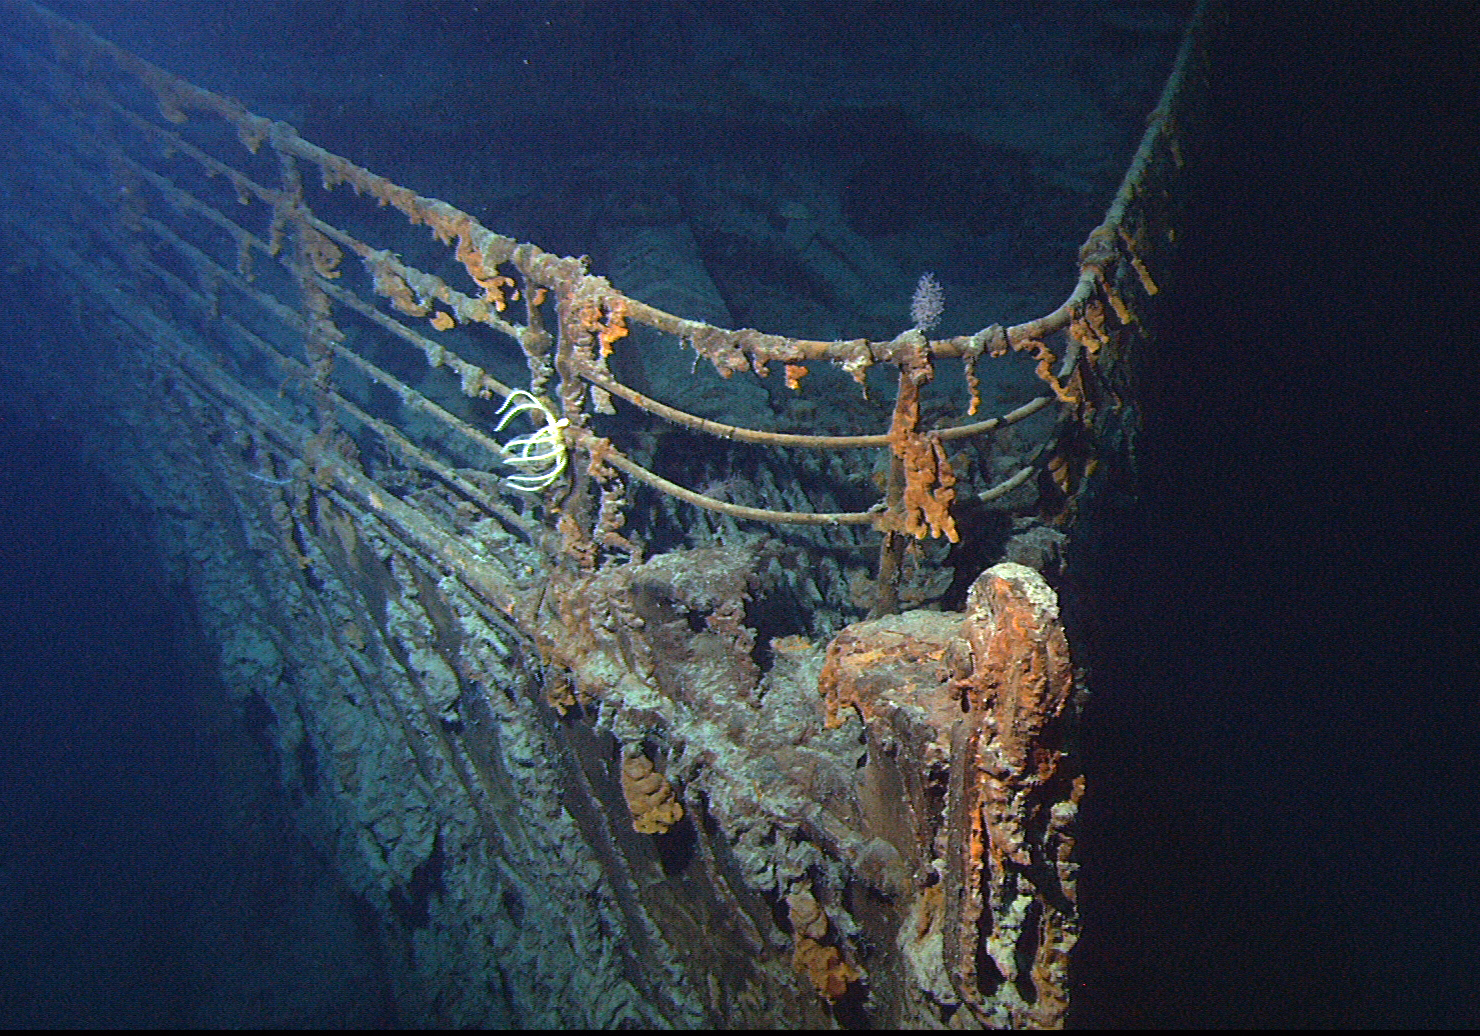 Search for shipwrecks